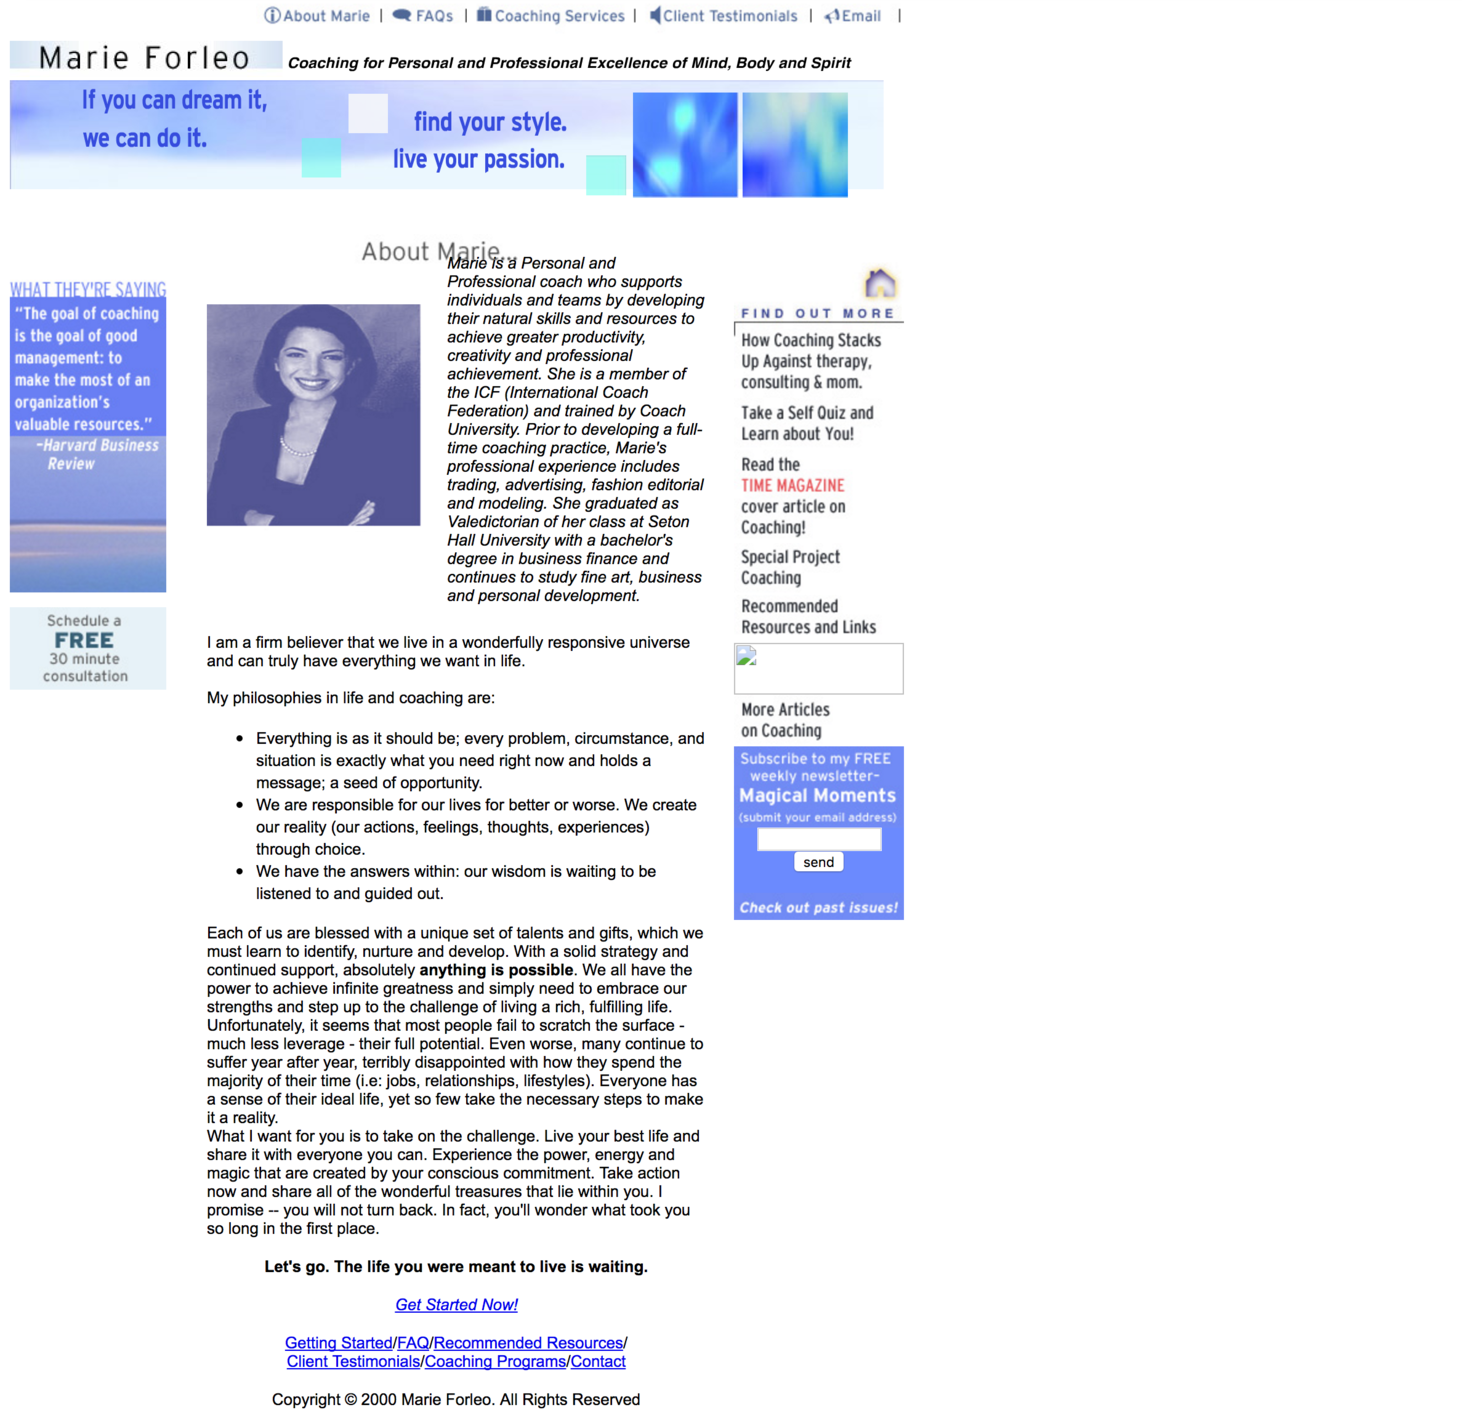 screencapture-web-archive-org-web-20010405233300-http-www-marieforleo-com-80-pages-aboutmar-html-1501801779632.png